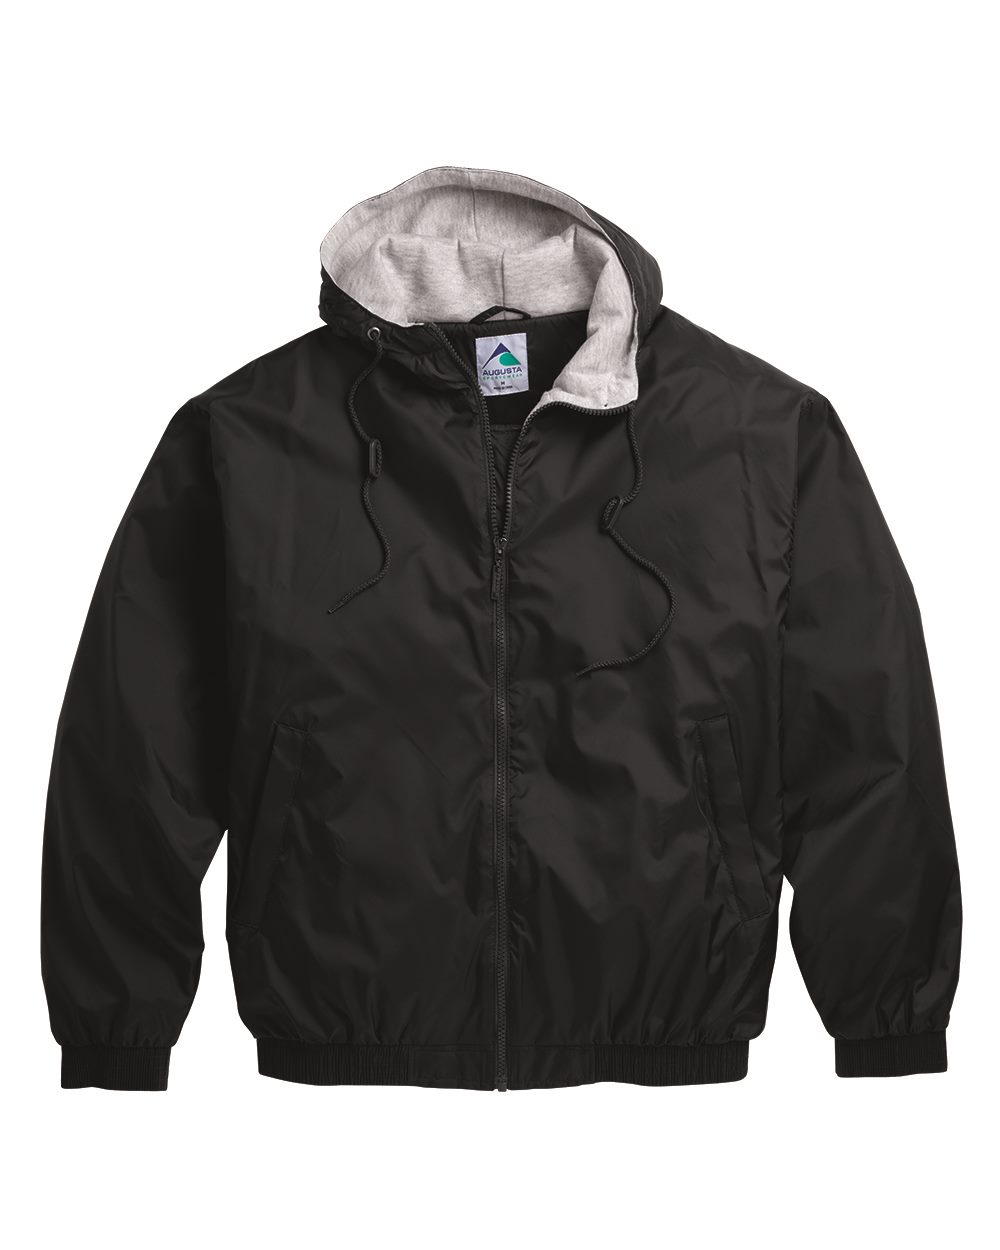 Augusta 3280 Sportswear - Hooded Fleece Lined Jacket